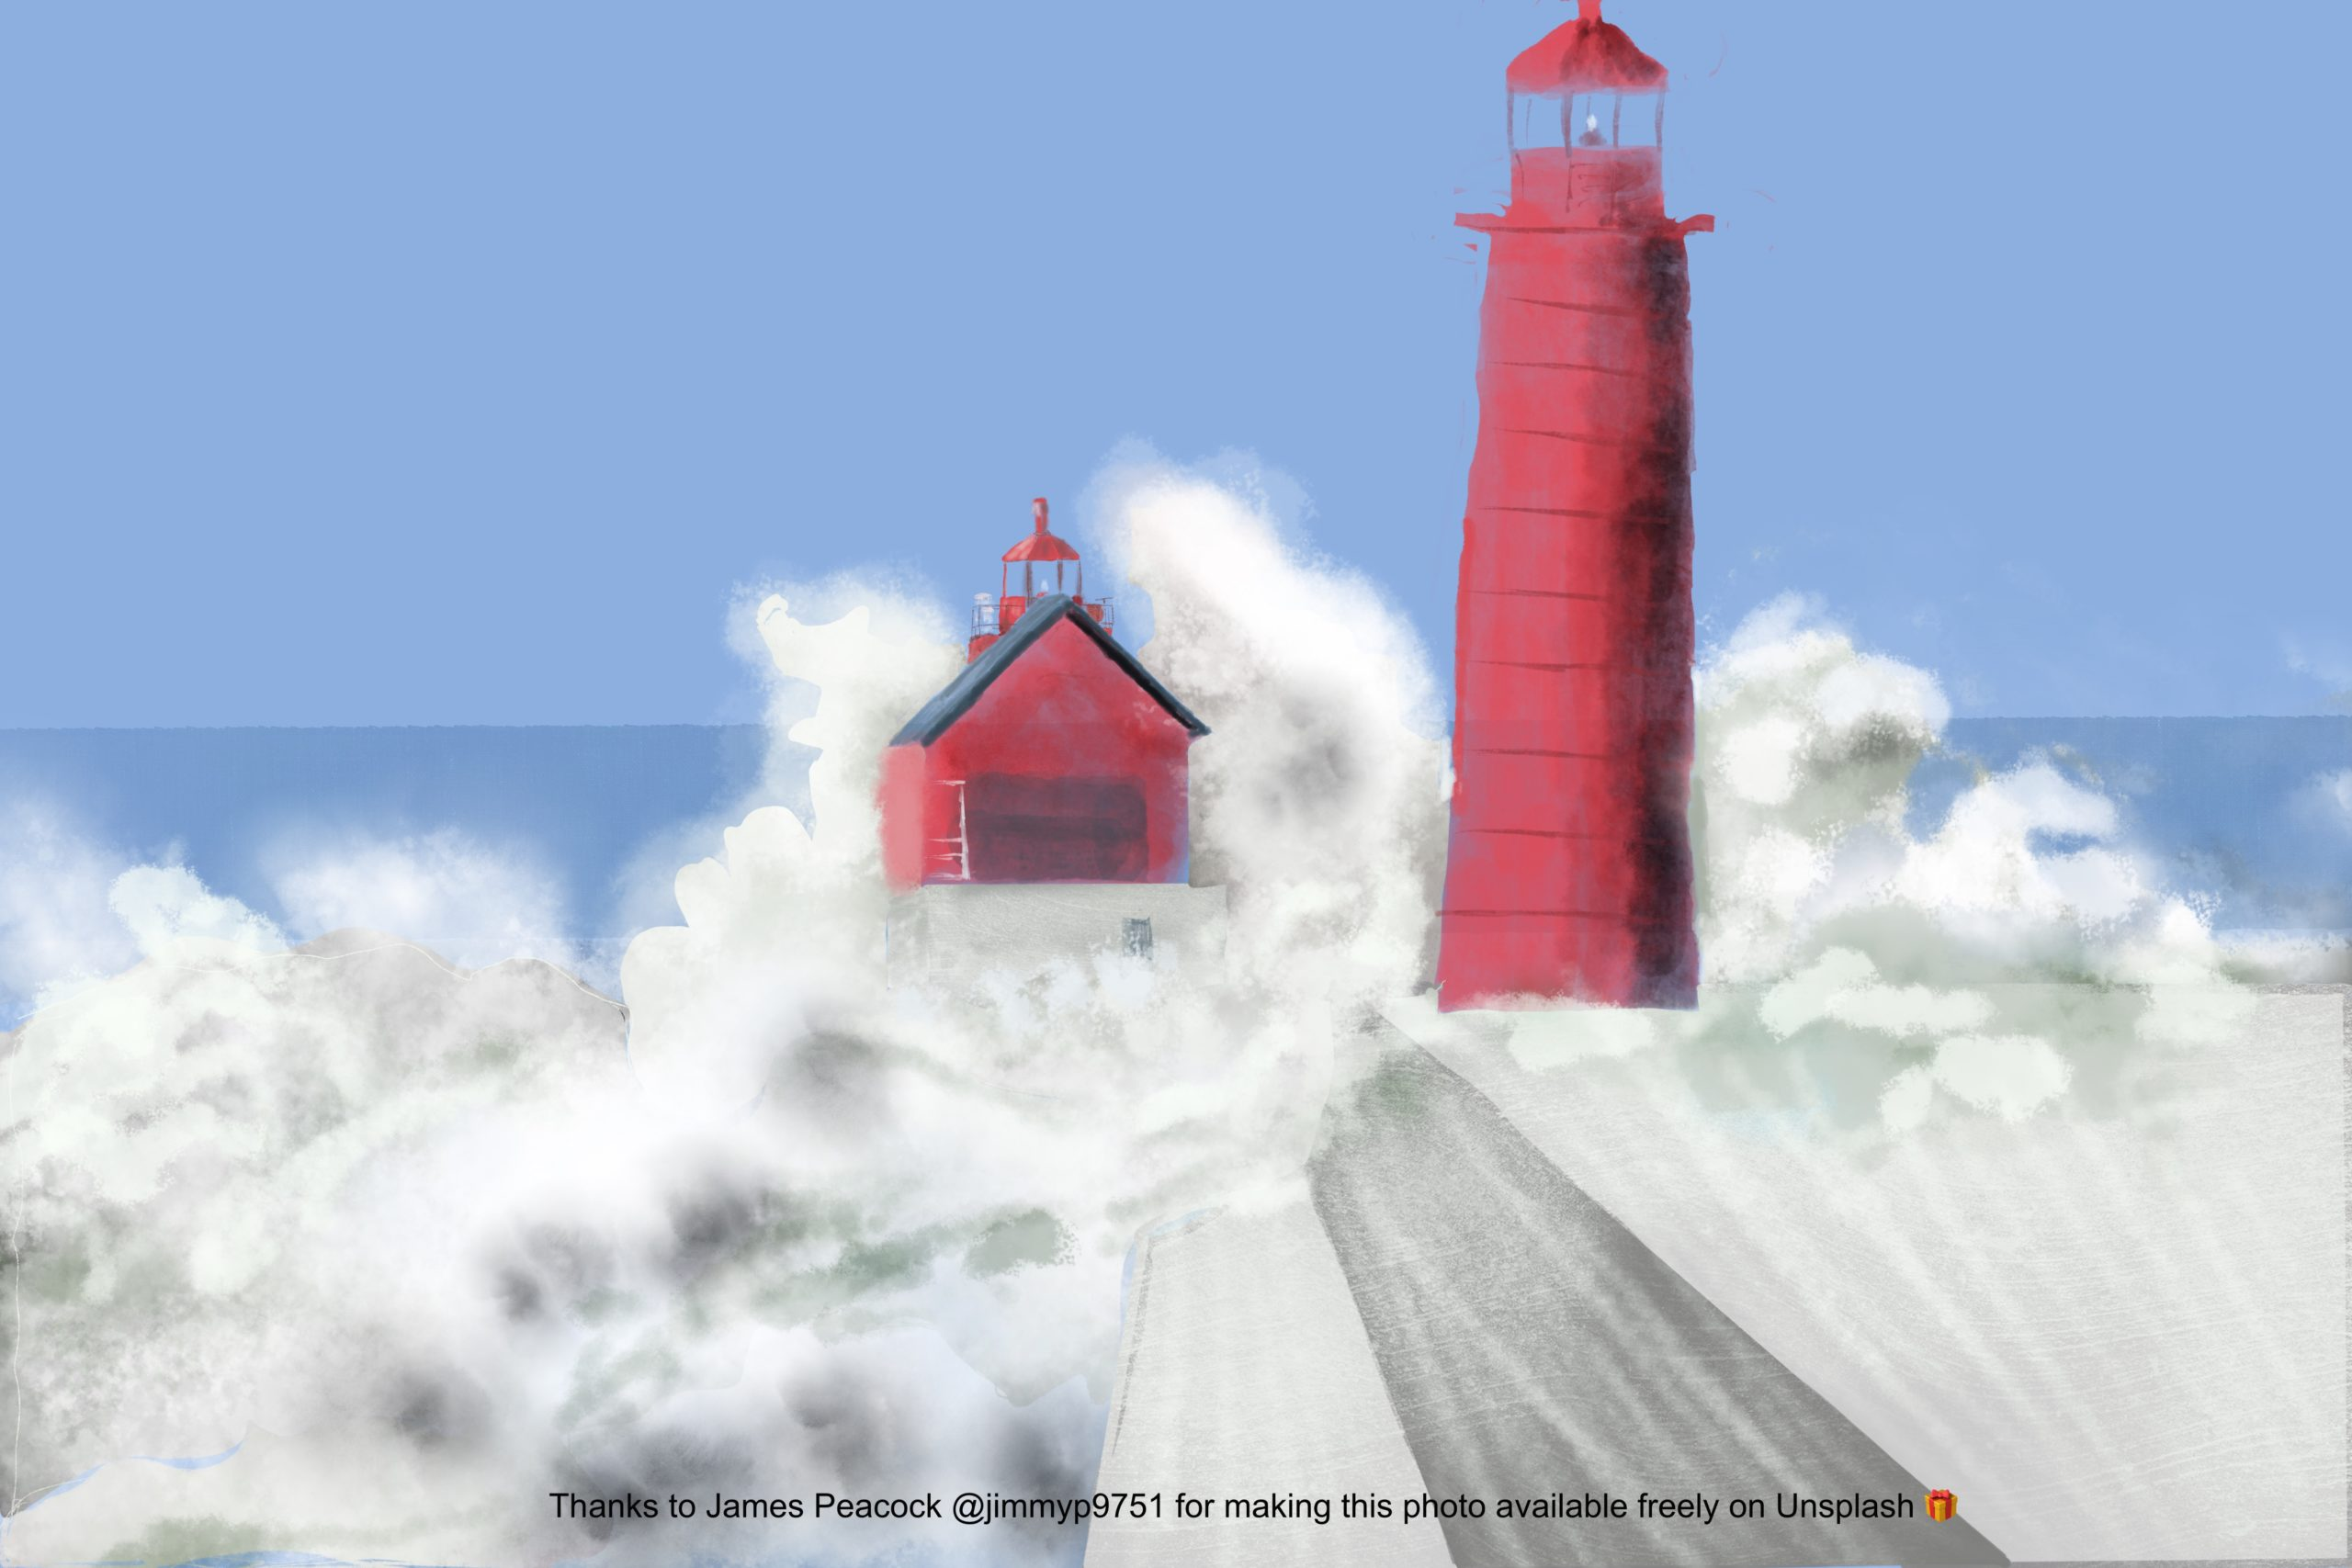 digital watercolor painting of a red lighthouse and service building, surrounded by crashing waves